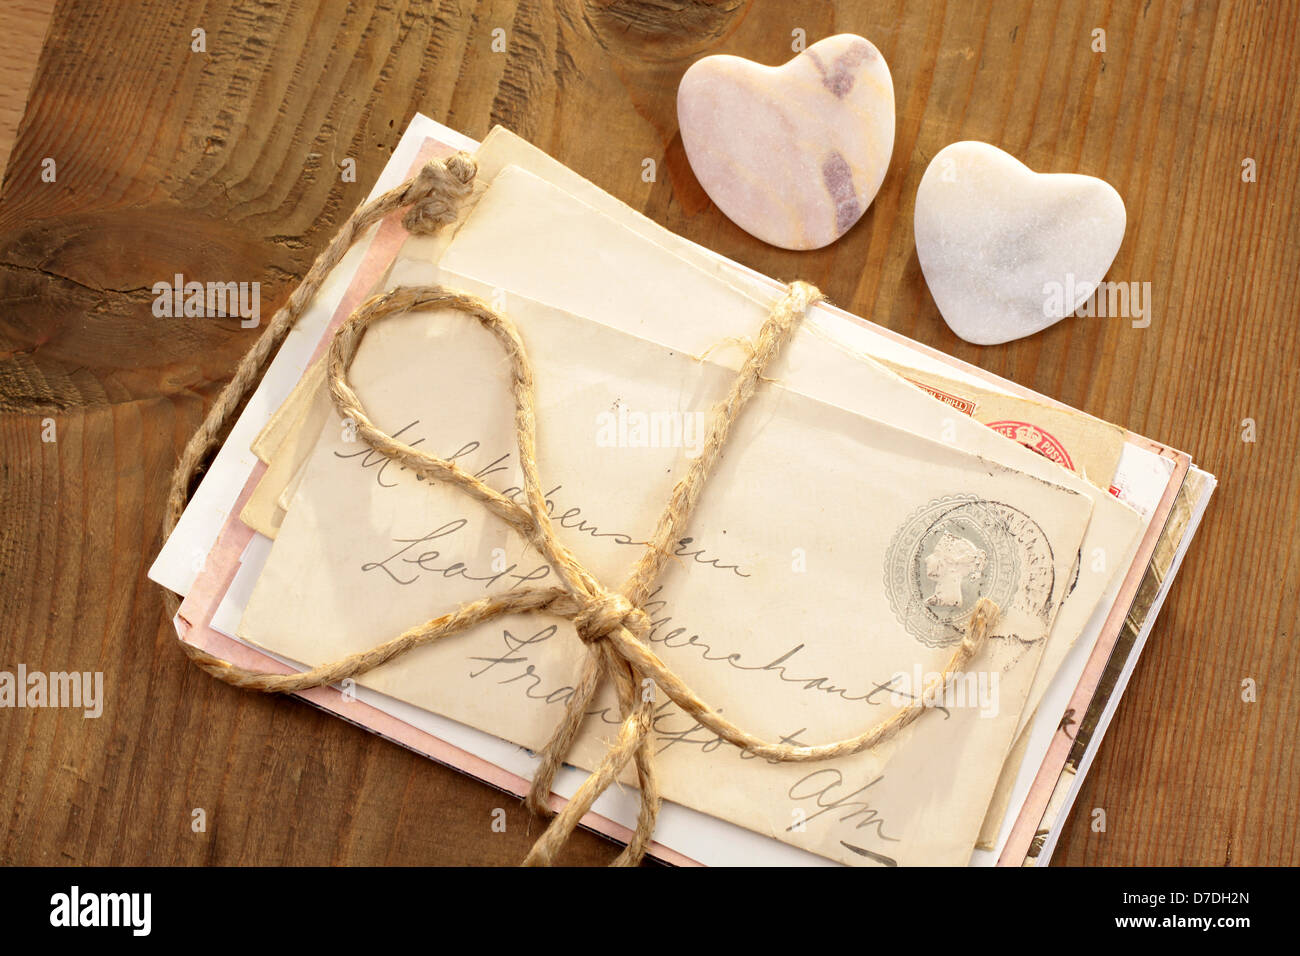 Stone hearts with old tied letters on wooden desk - Stock Image